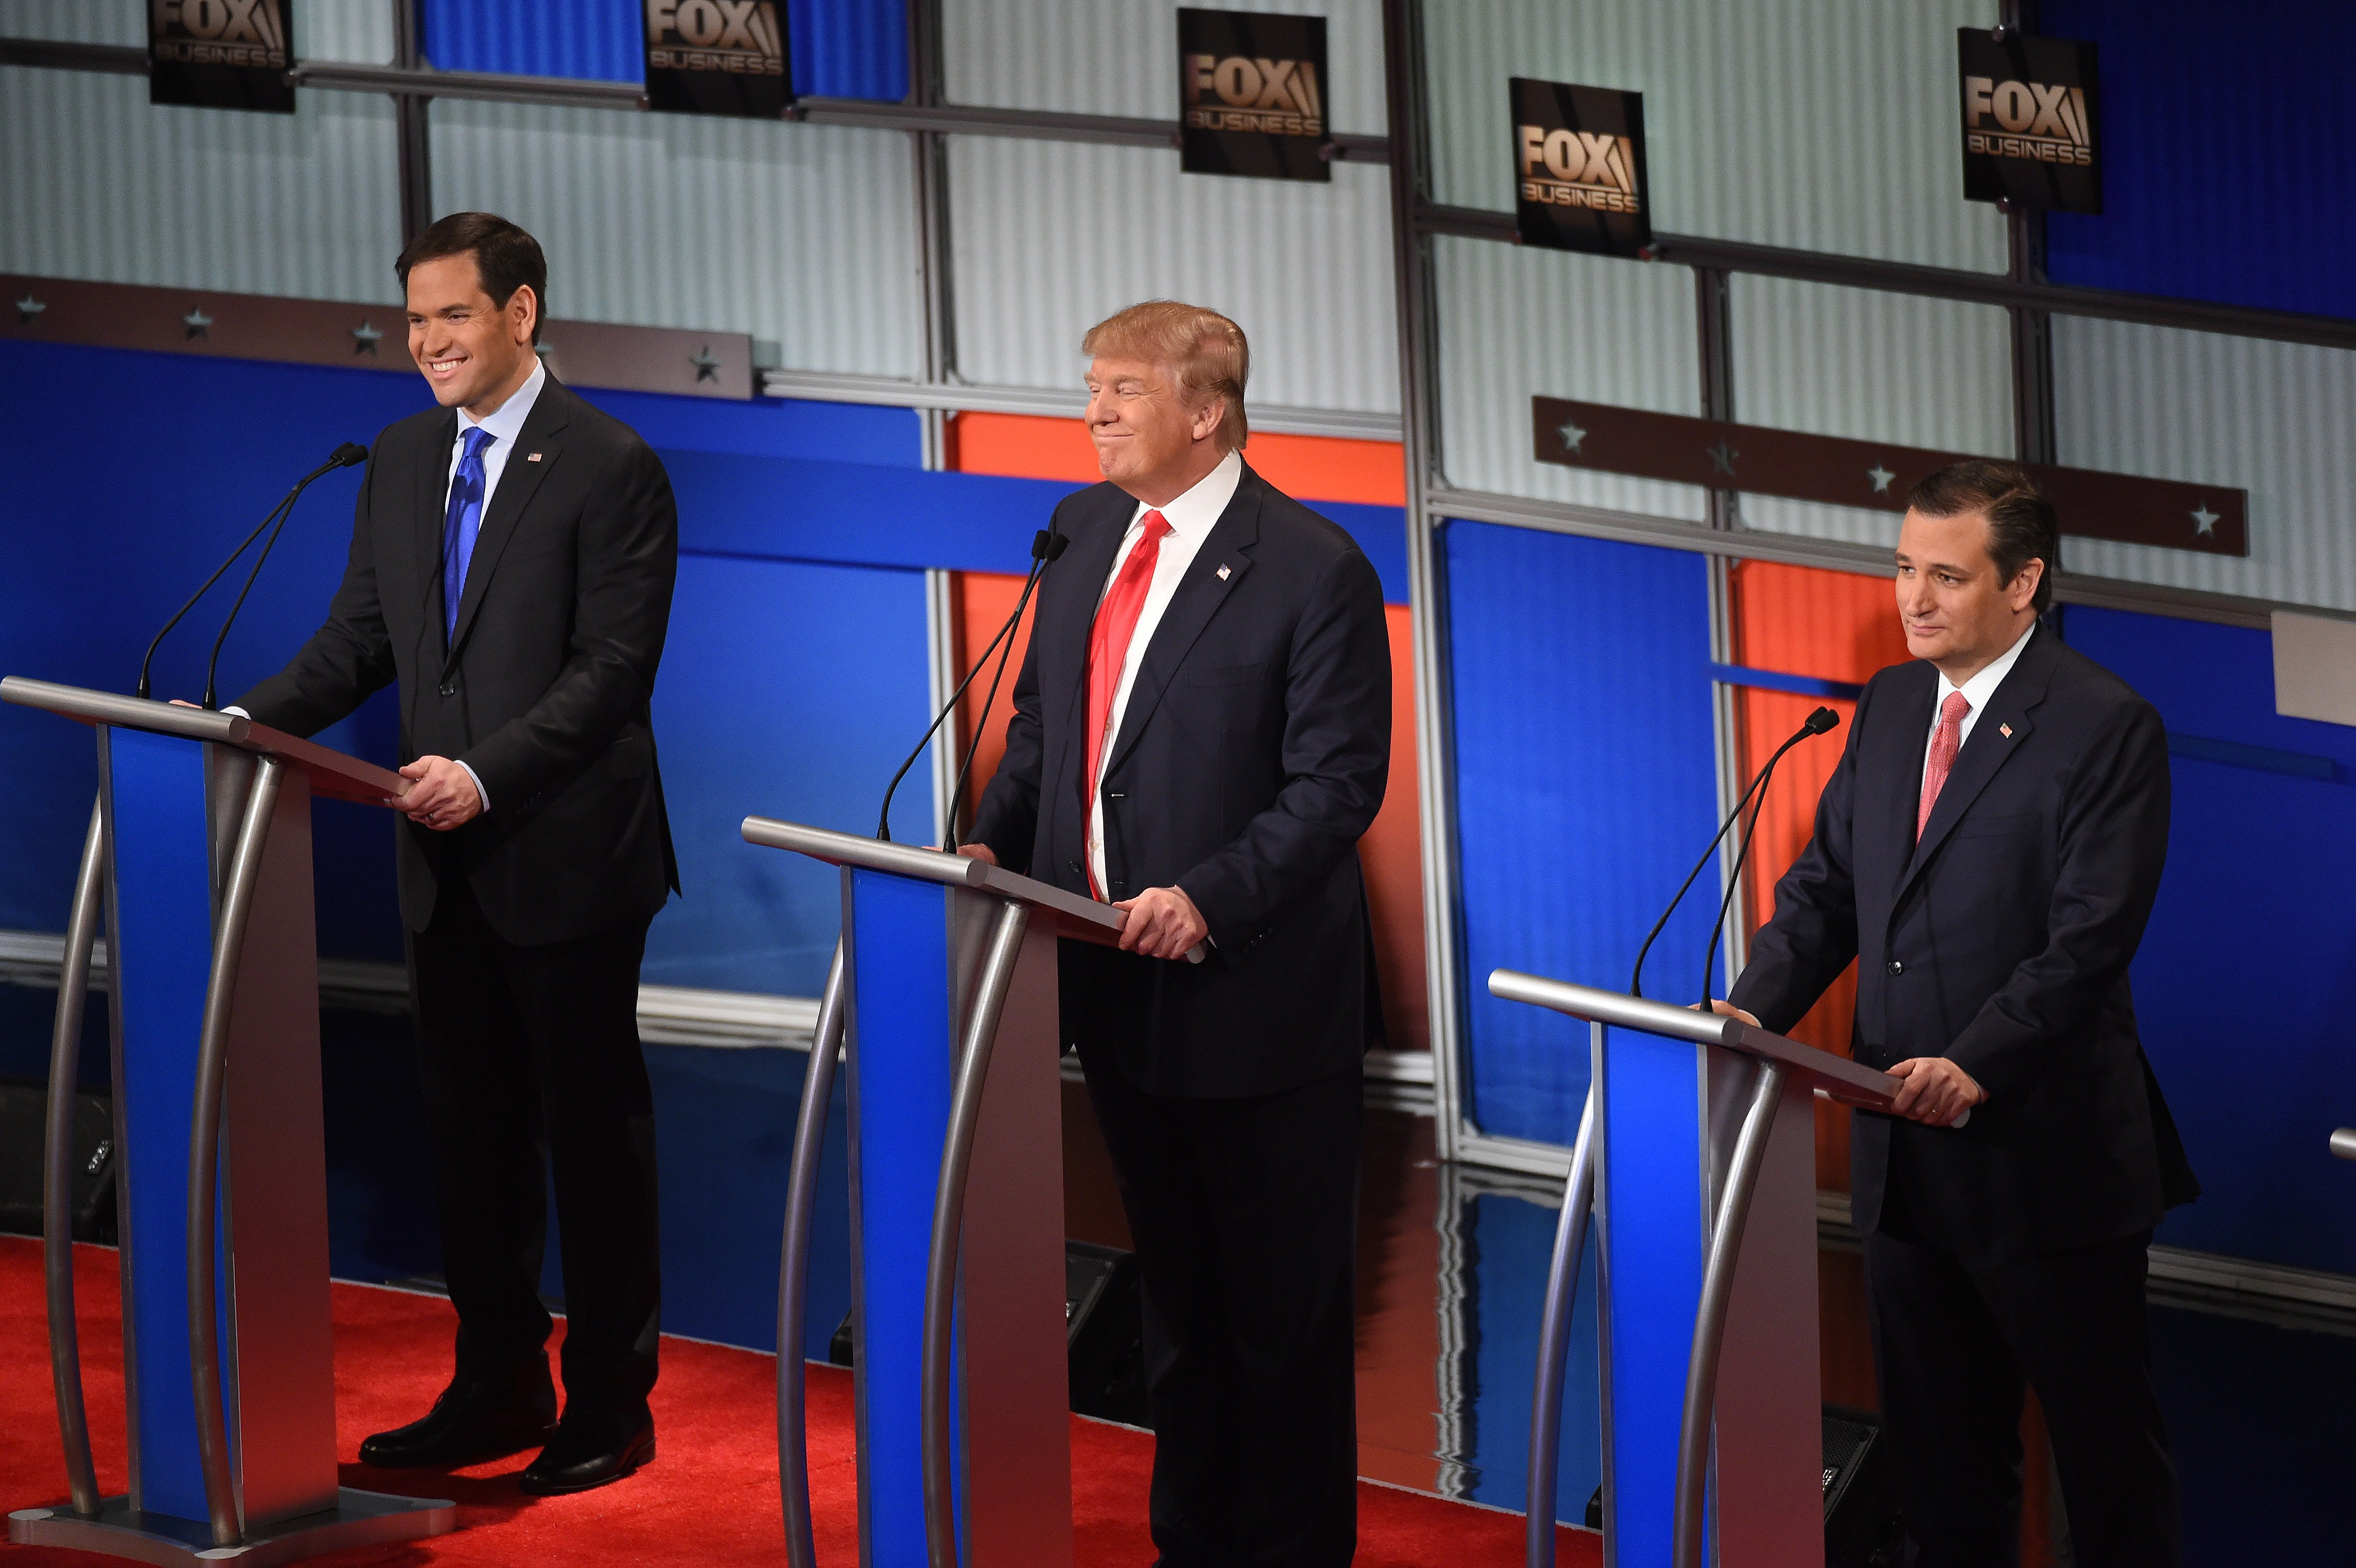 Republican presidential candidates participate during the Fox Business Network Republican presidential debate on Jan. 14, 2016, in North Charleston, S.C.